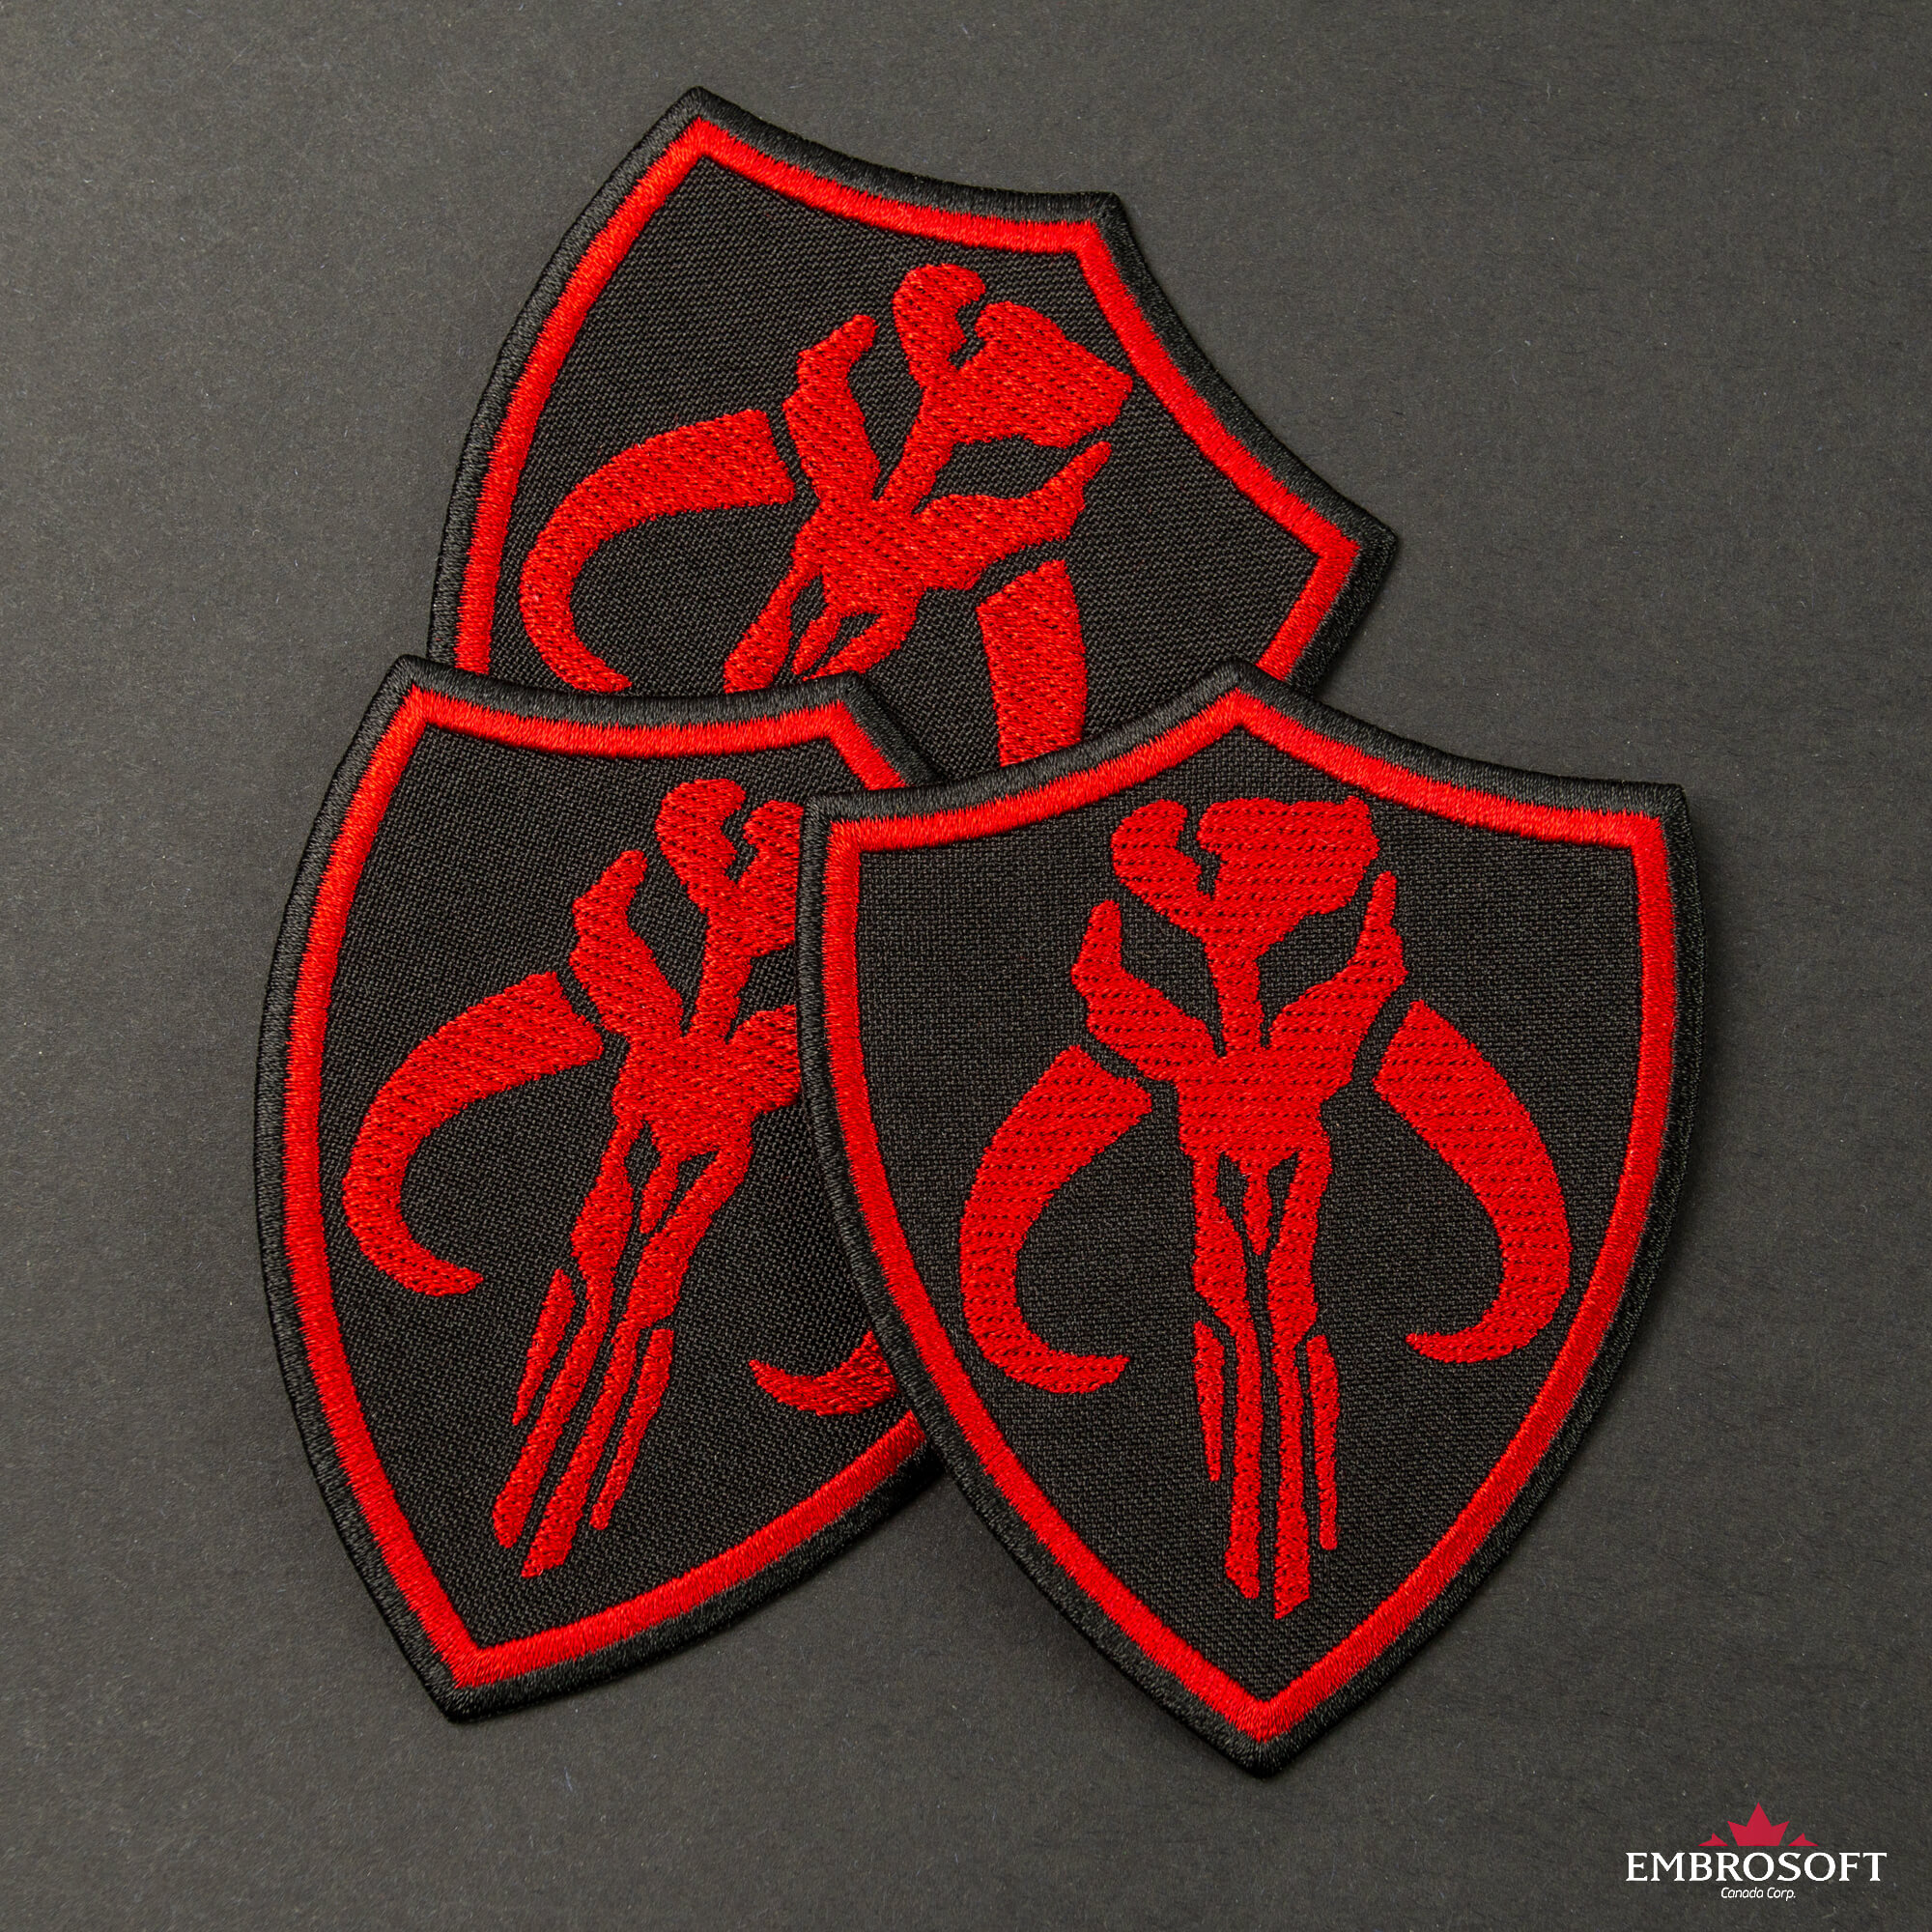 Mandalorian Skull Embroidered Iron-on Patch